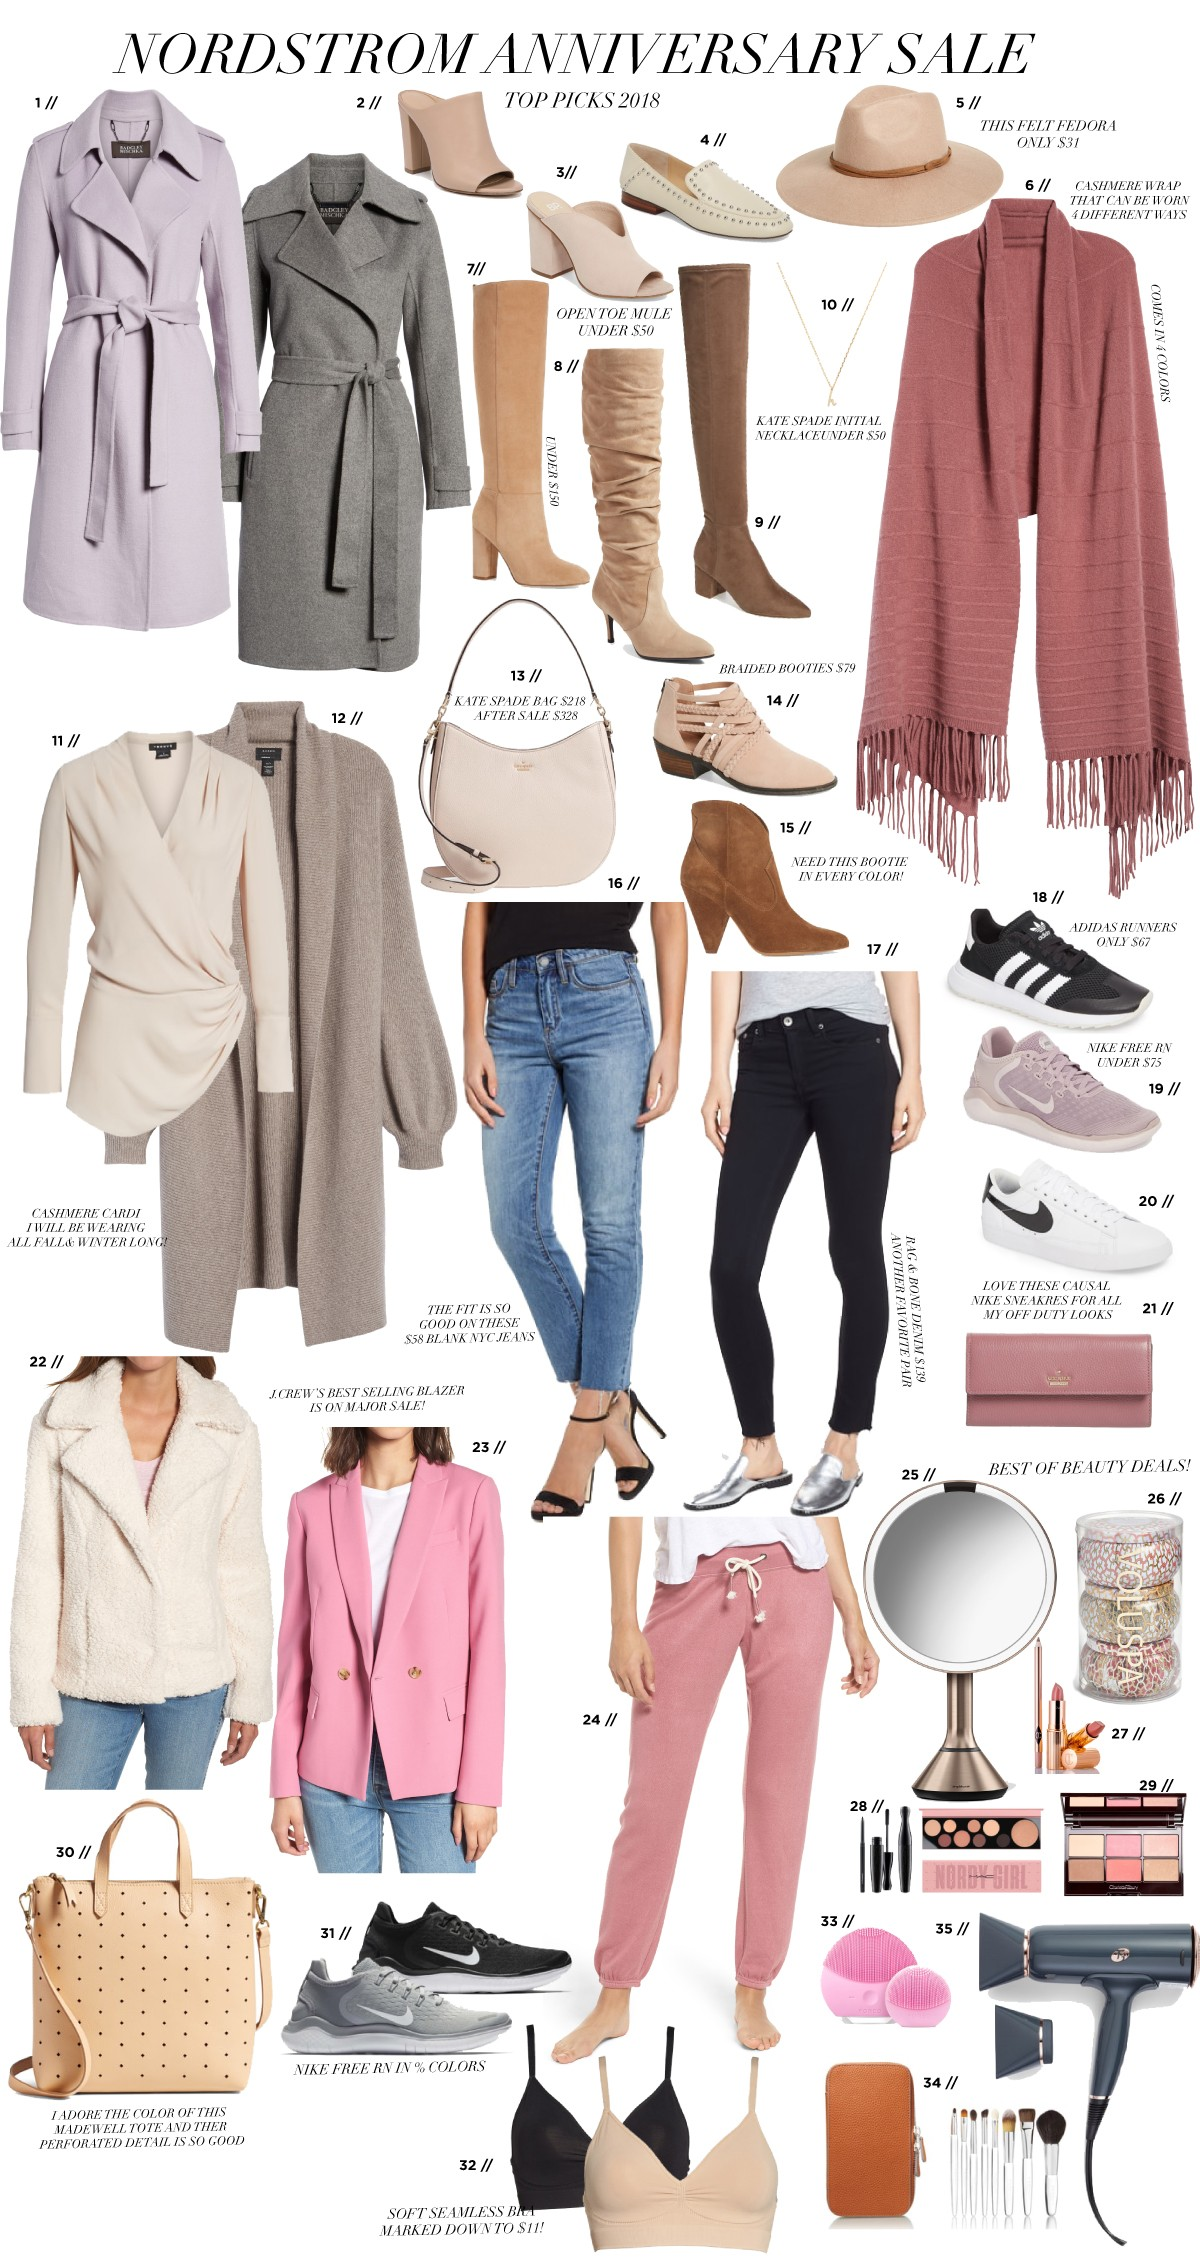 74537d0af70 2018 NORDSTROM ANNIVERSARY SALE EARLY ACCESS GUIDE + $1,000 GIVEAWAY ...